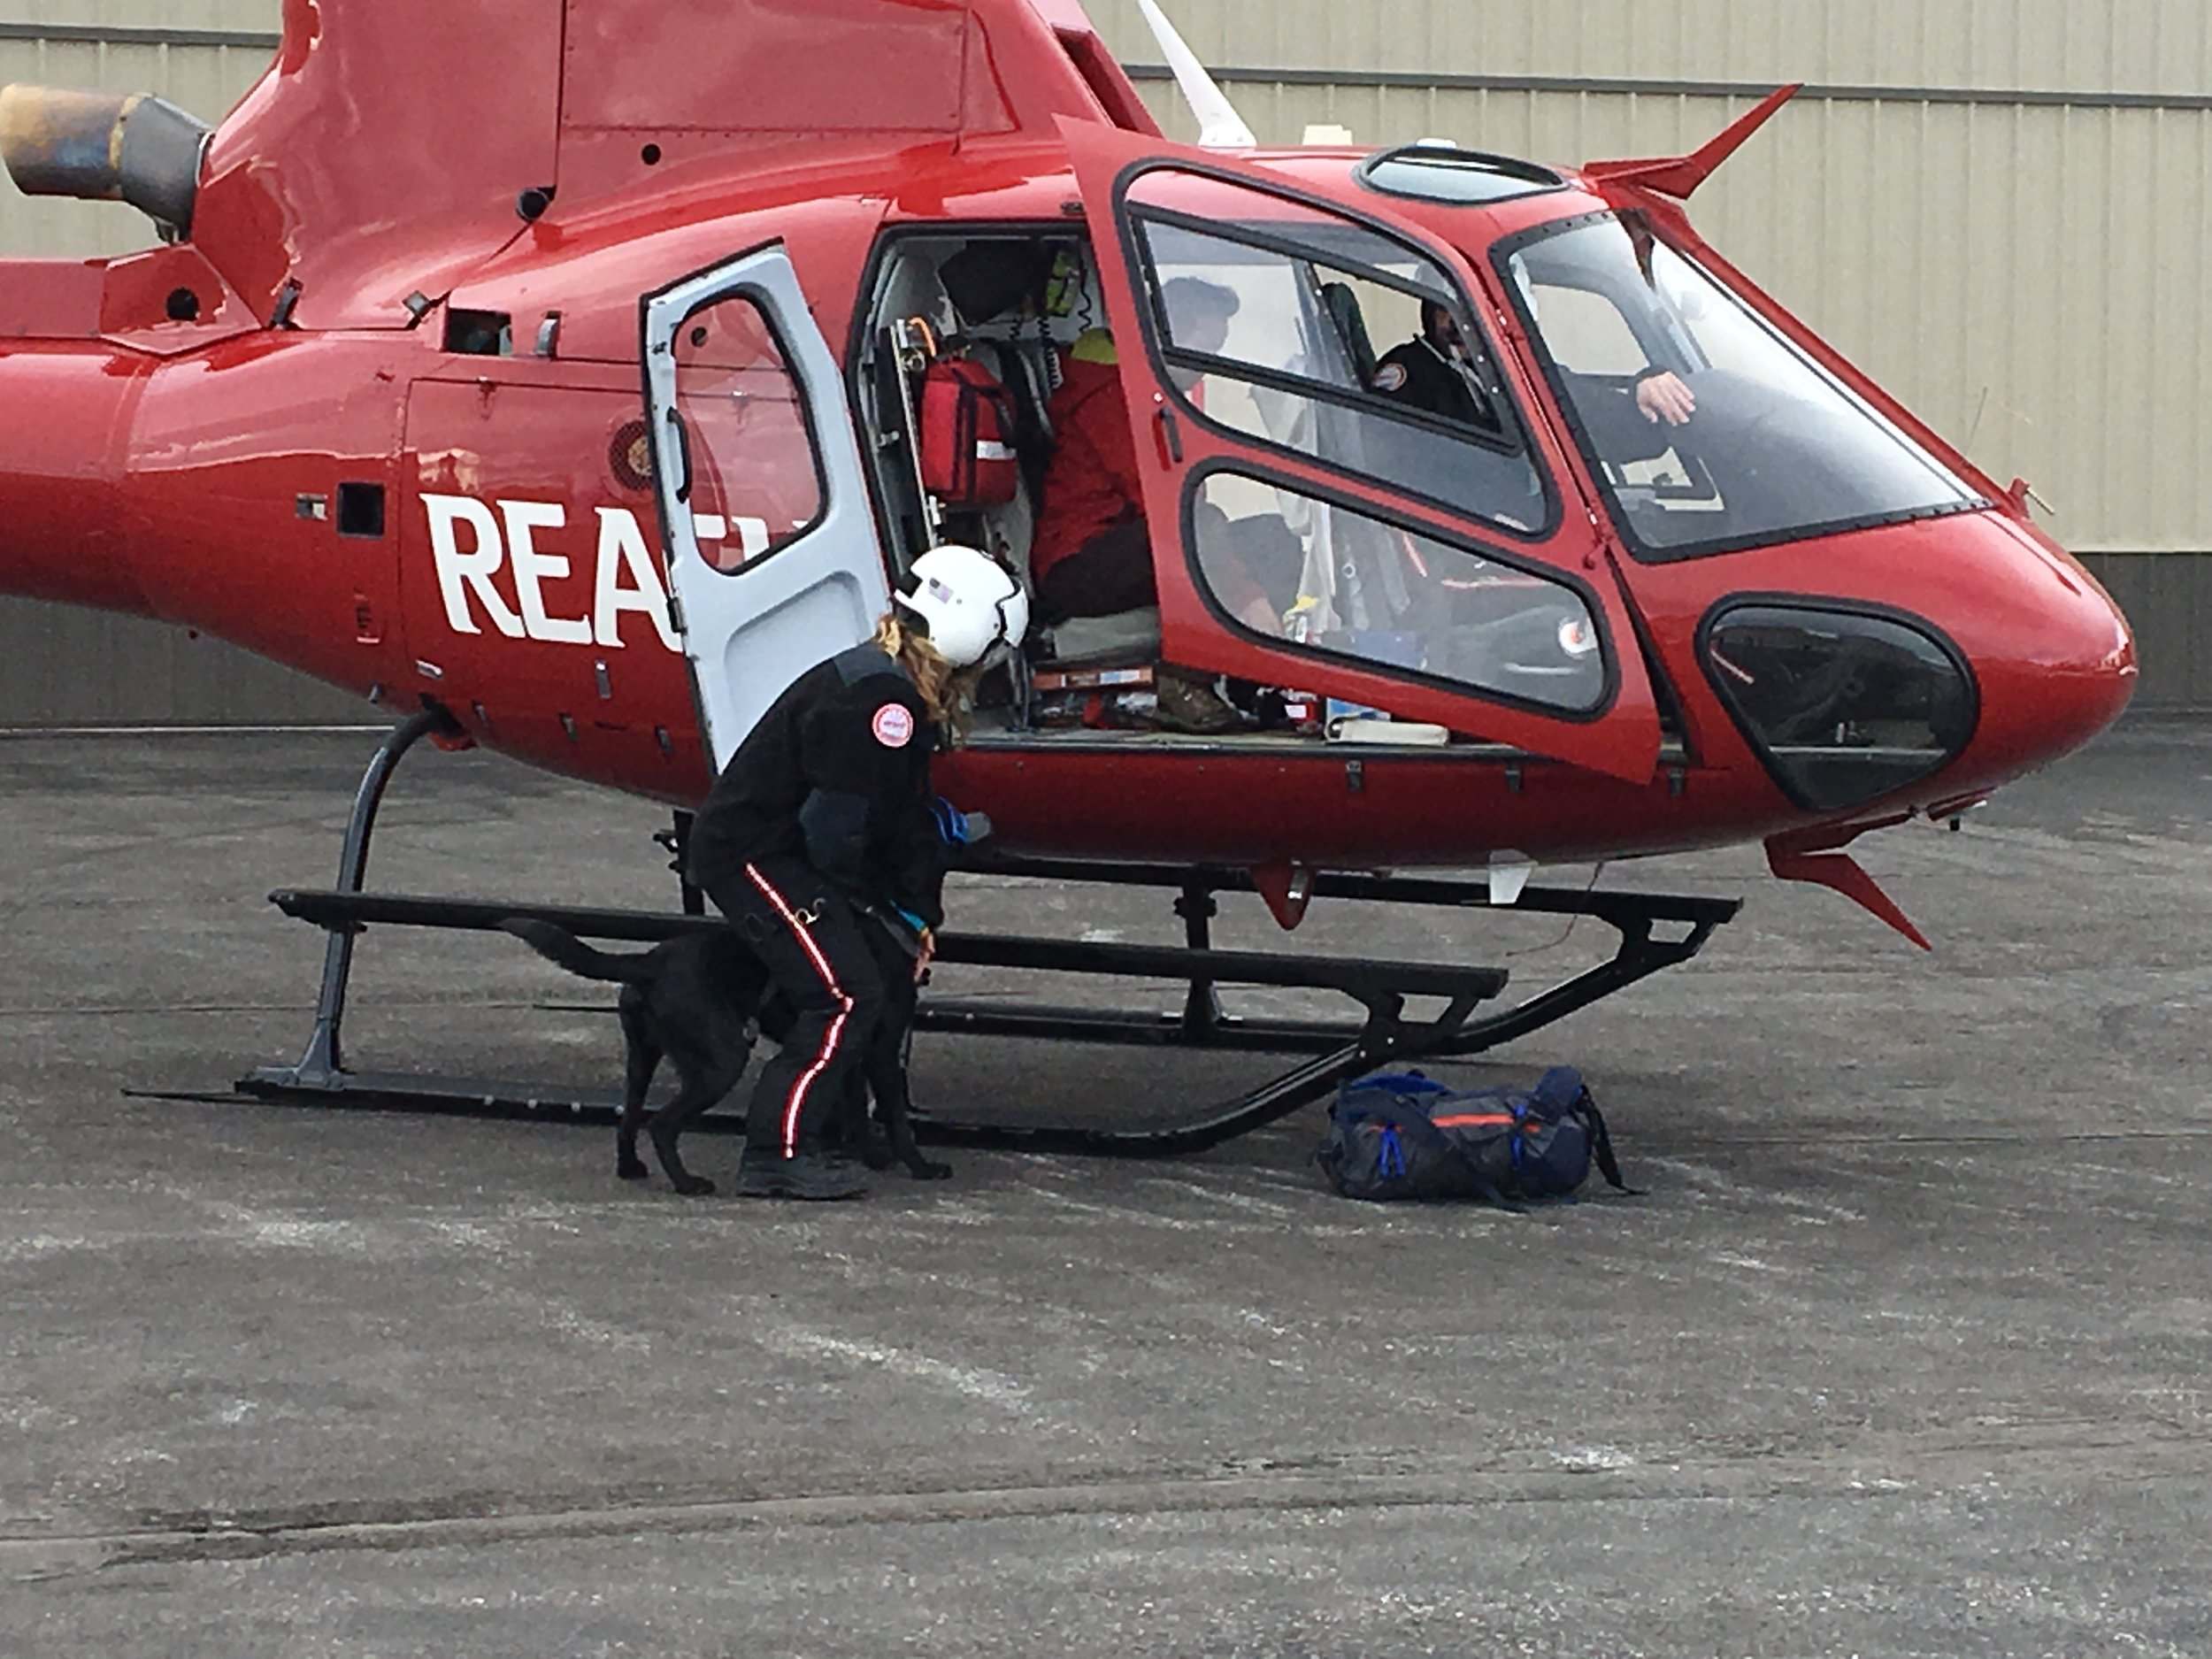 K9 Yodel loading into the helicopter